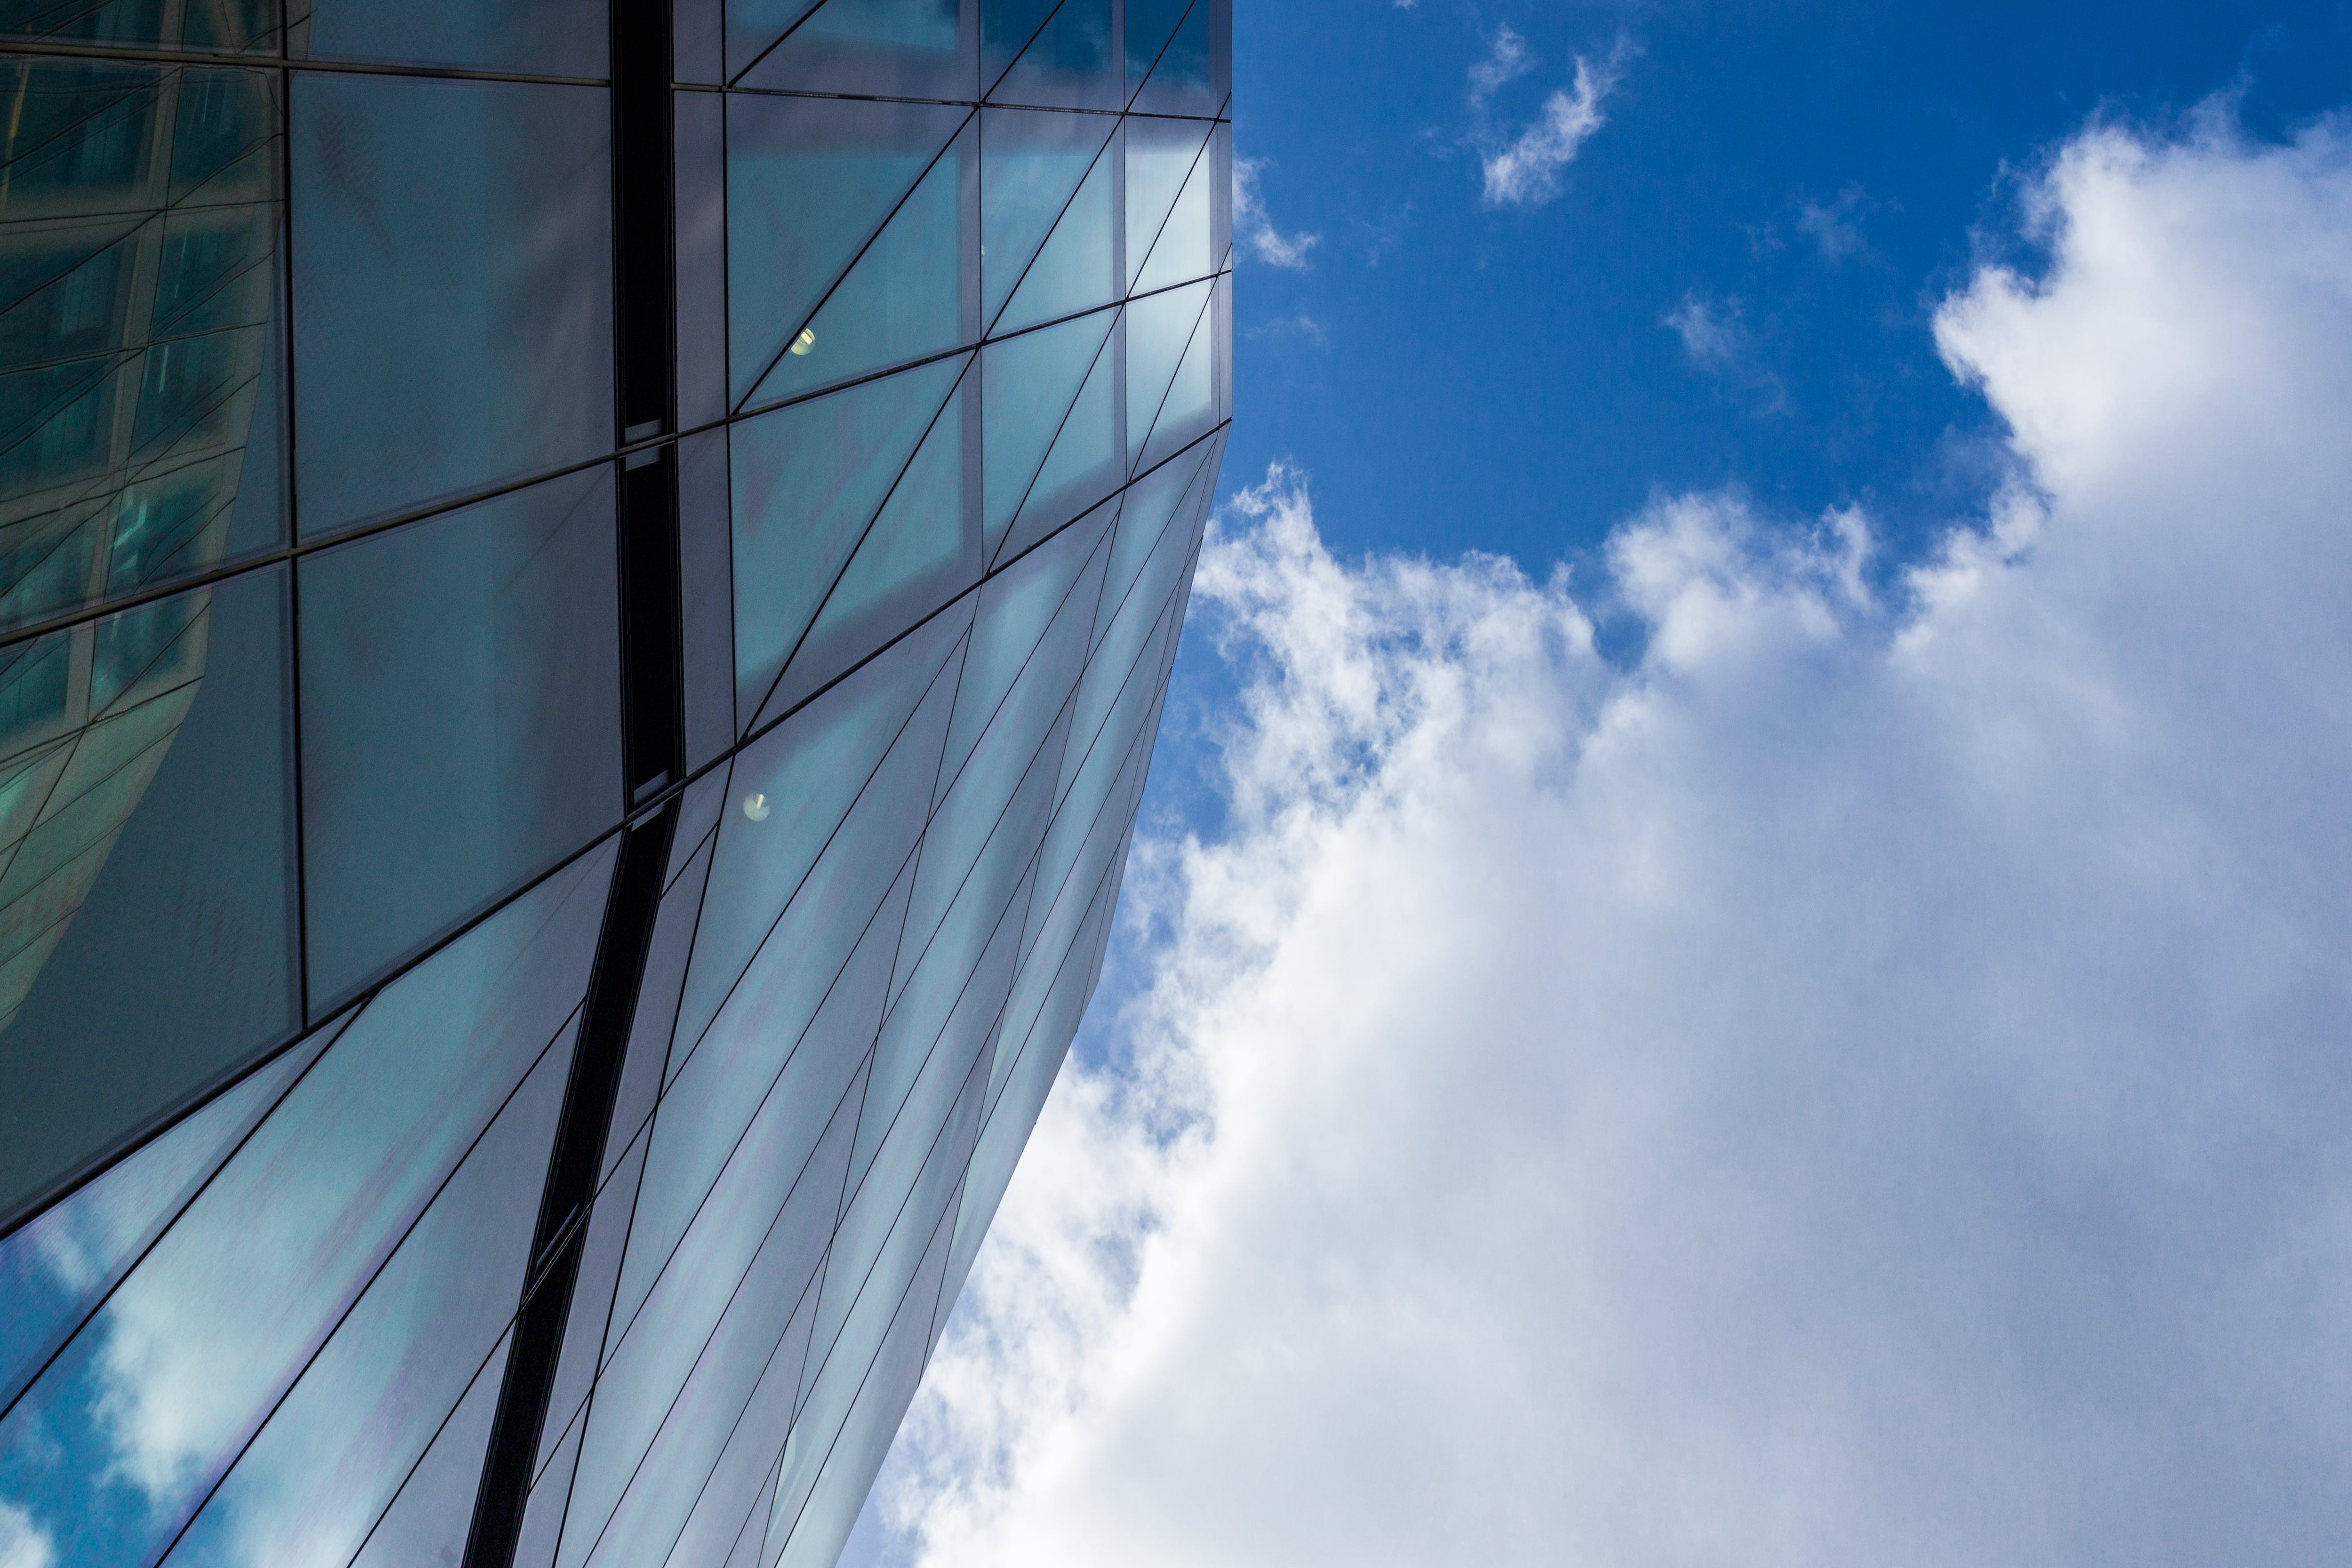 Free stock photo of glass, architecture, windows, lines